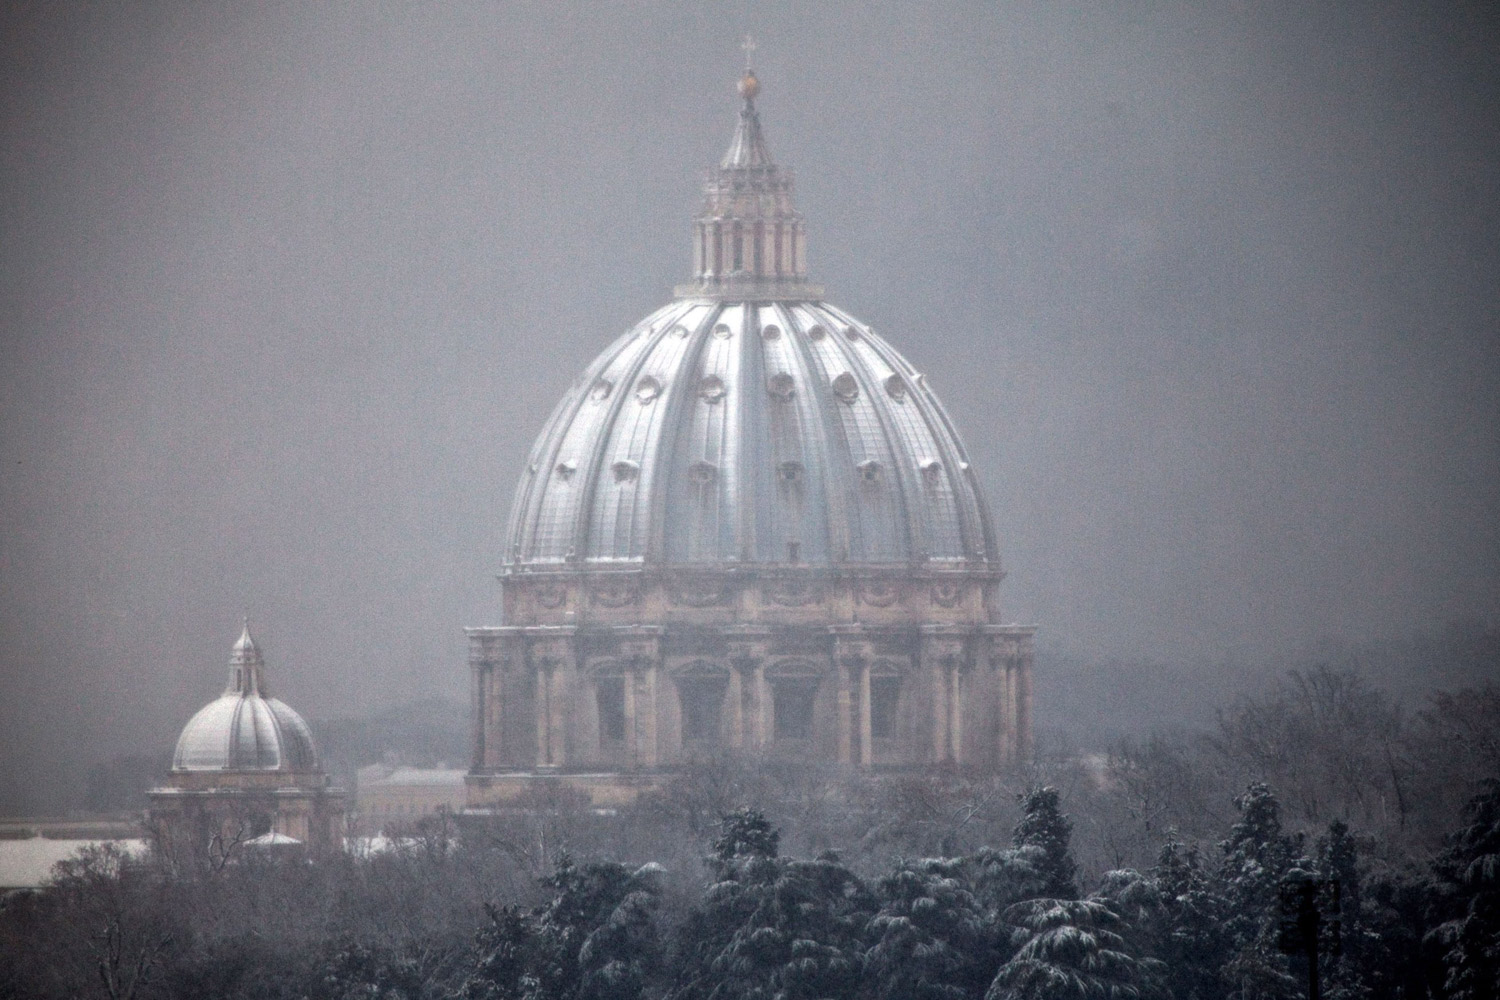 February 3, 2012. The dome of the St. Peter's Basilica in the Vatican is seen through snowfall from a certain distance in Rome.